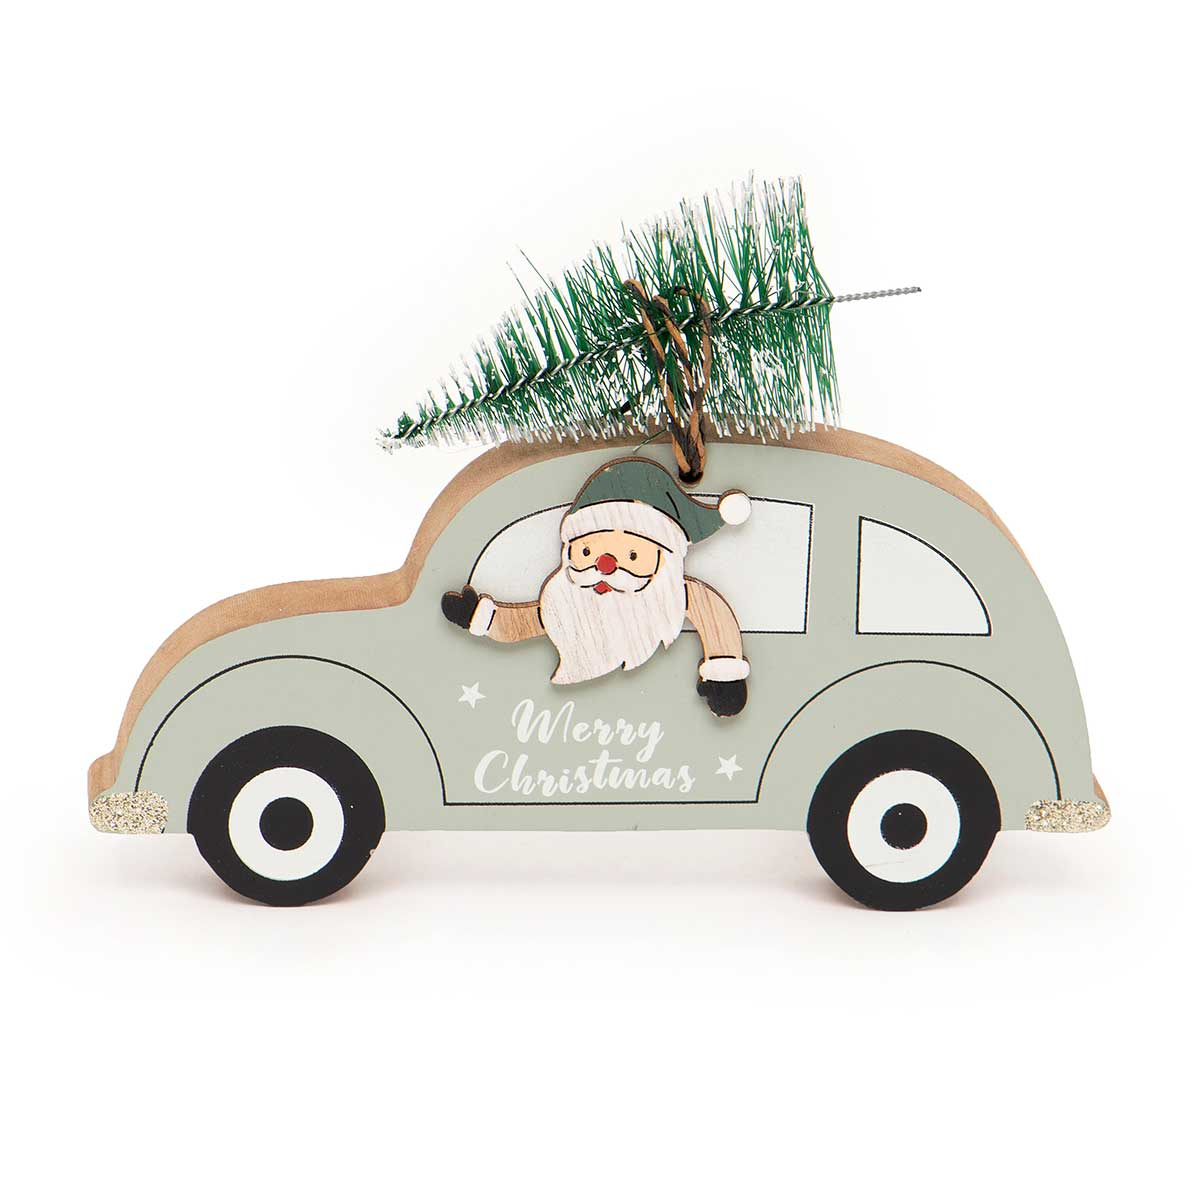 WOOD SANTA IN CAR WITH TREE ON ROOF SHELF SITTER